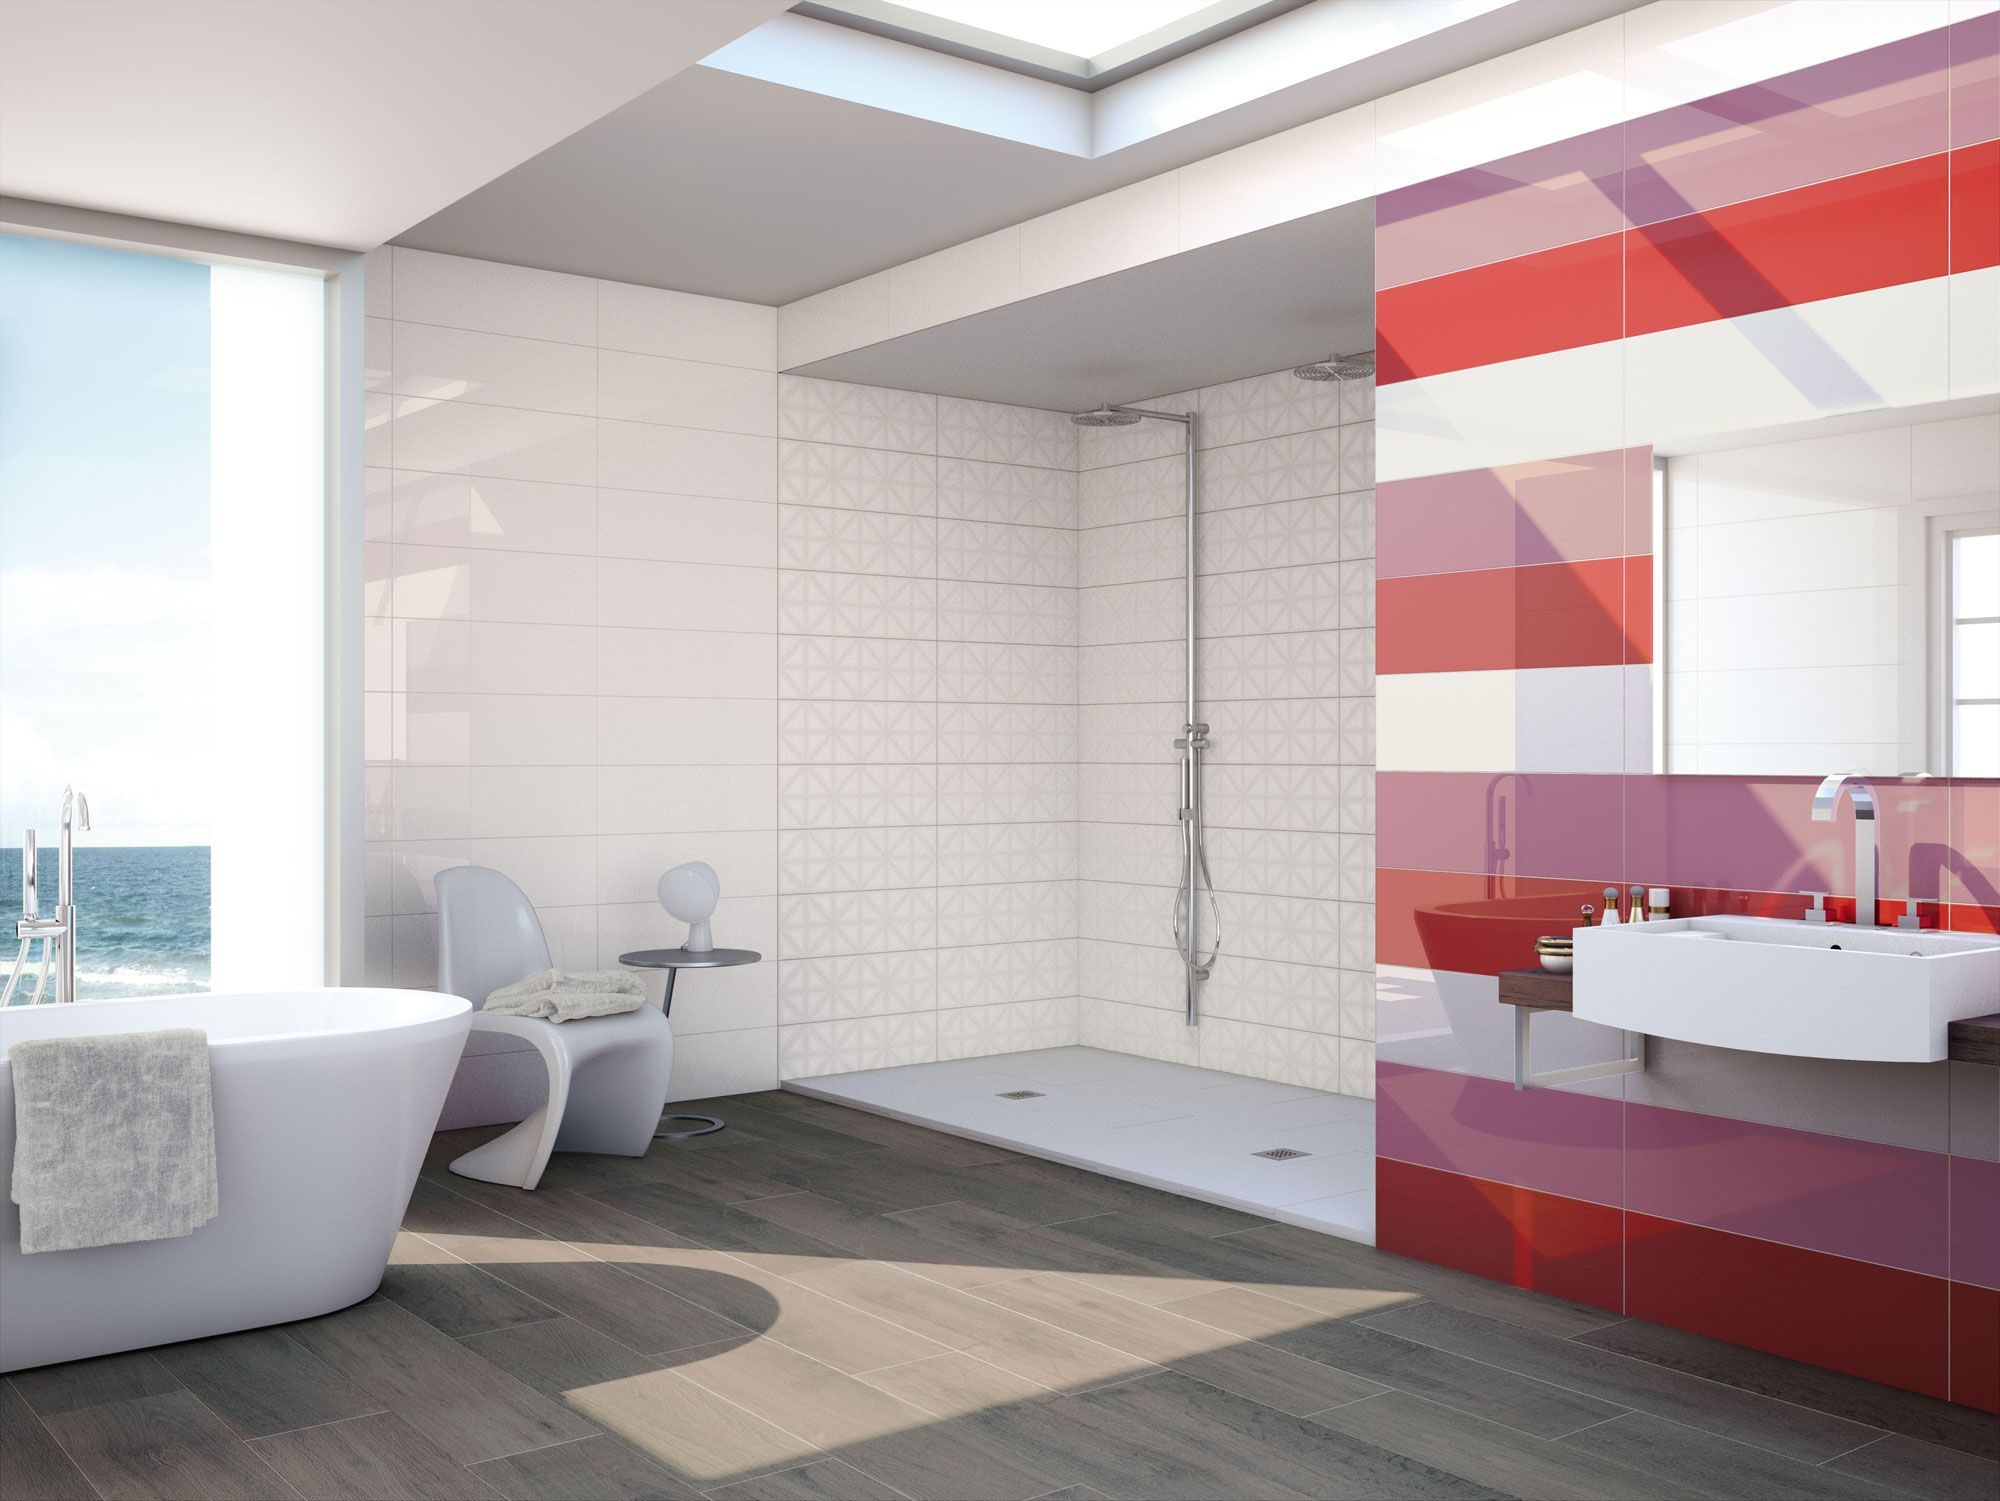 Colourful #bathroom In Red, Pink And White With #ceramic Wood #floors. 3003u2026